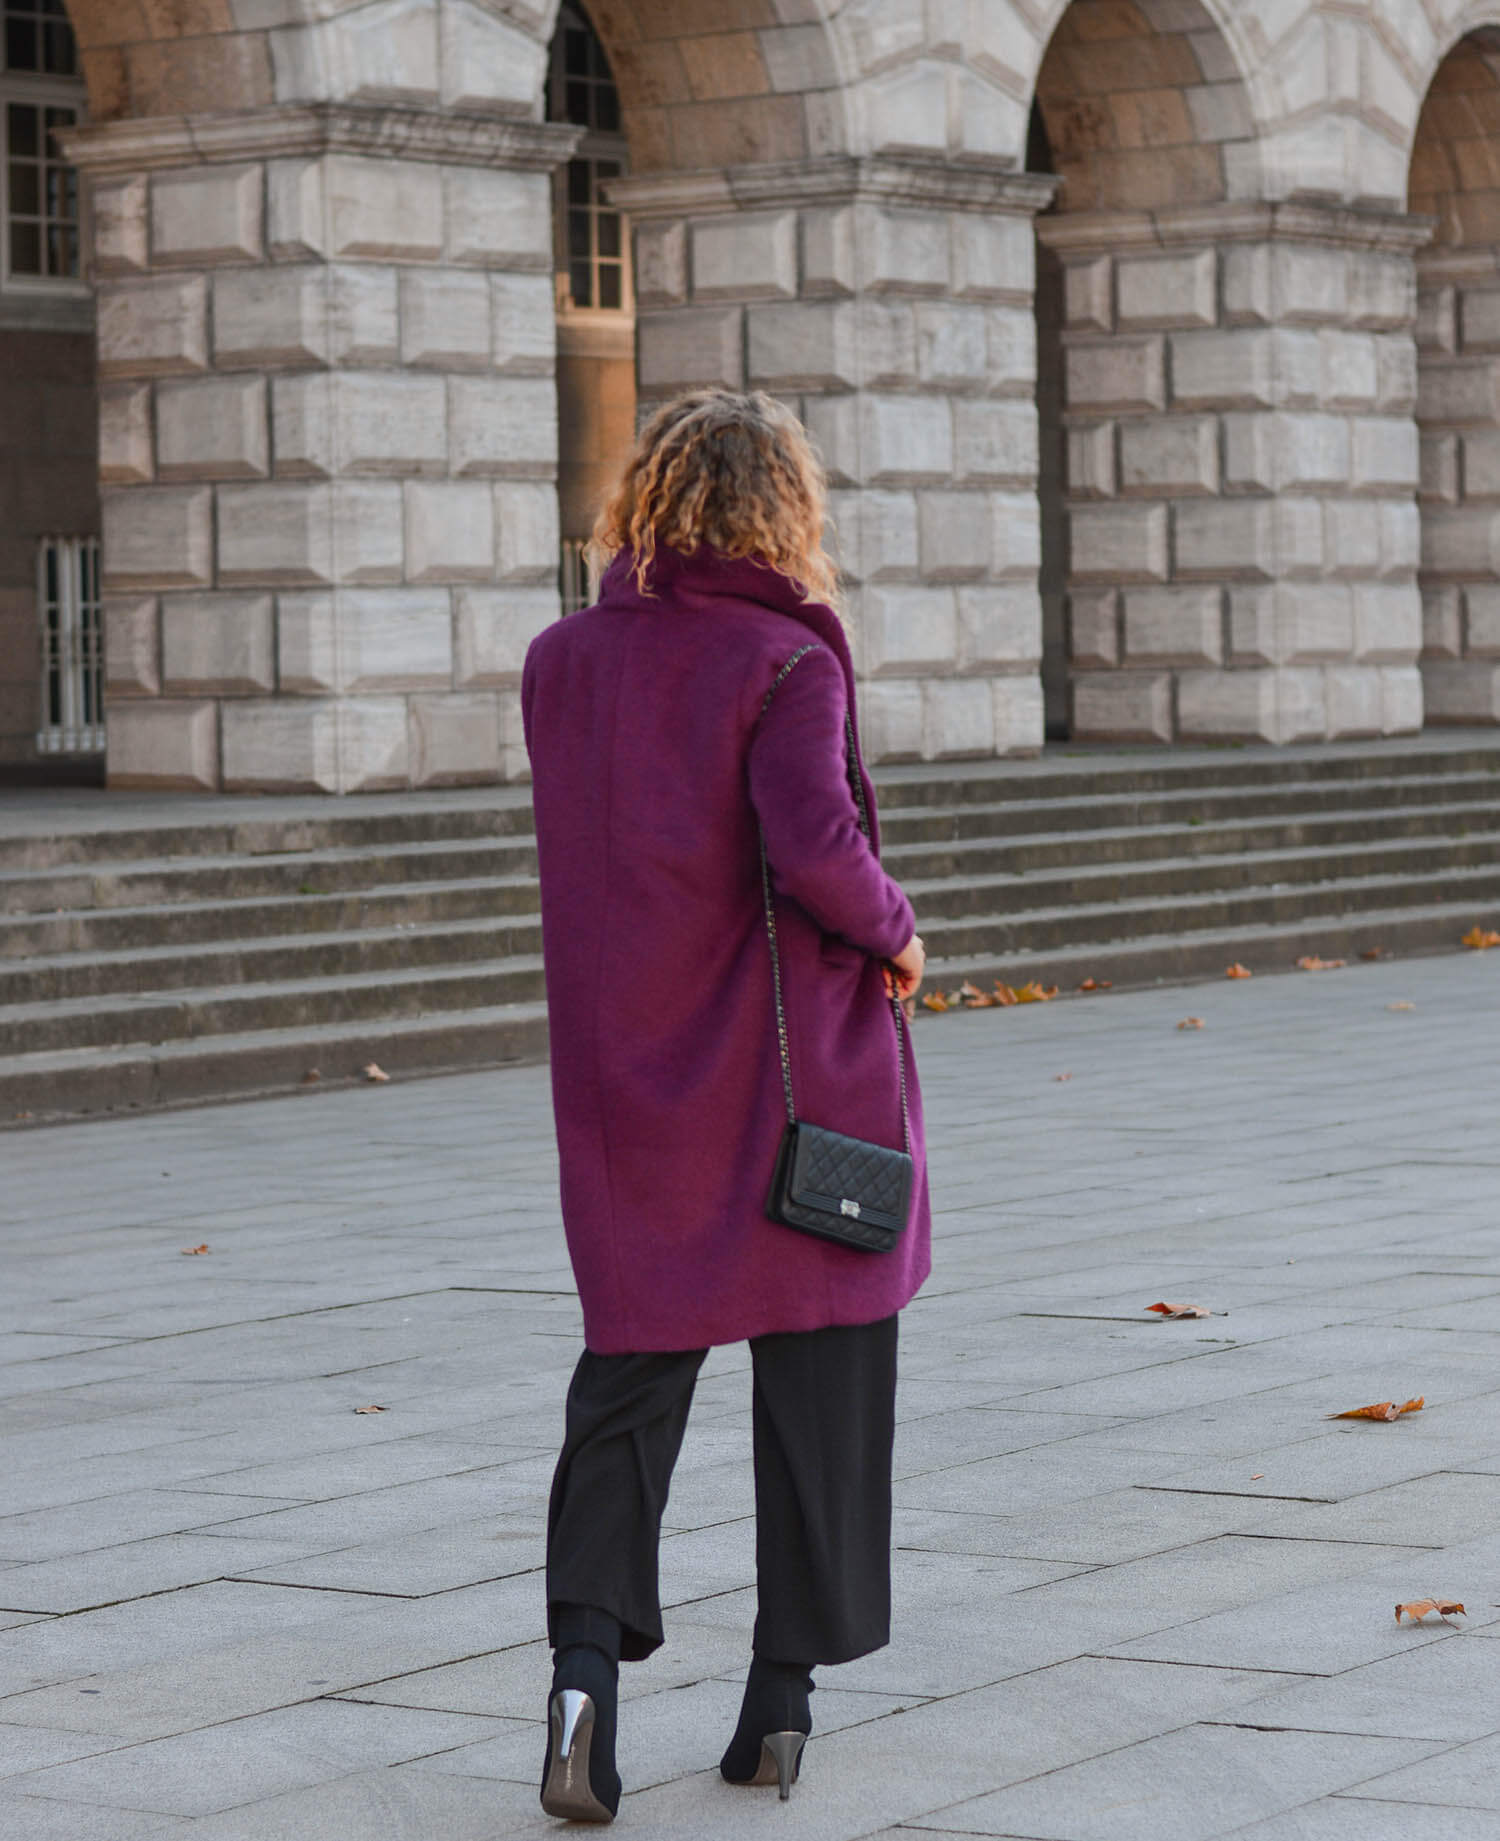 culottes-in-winter-purple-wool-coat-tweed-jacket-sock-boots-kationette-fashionblogger